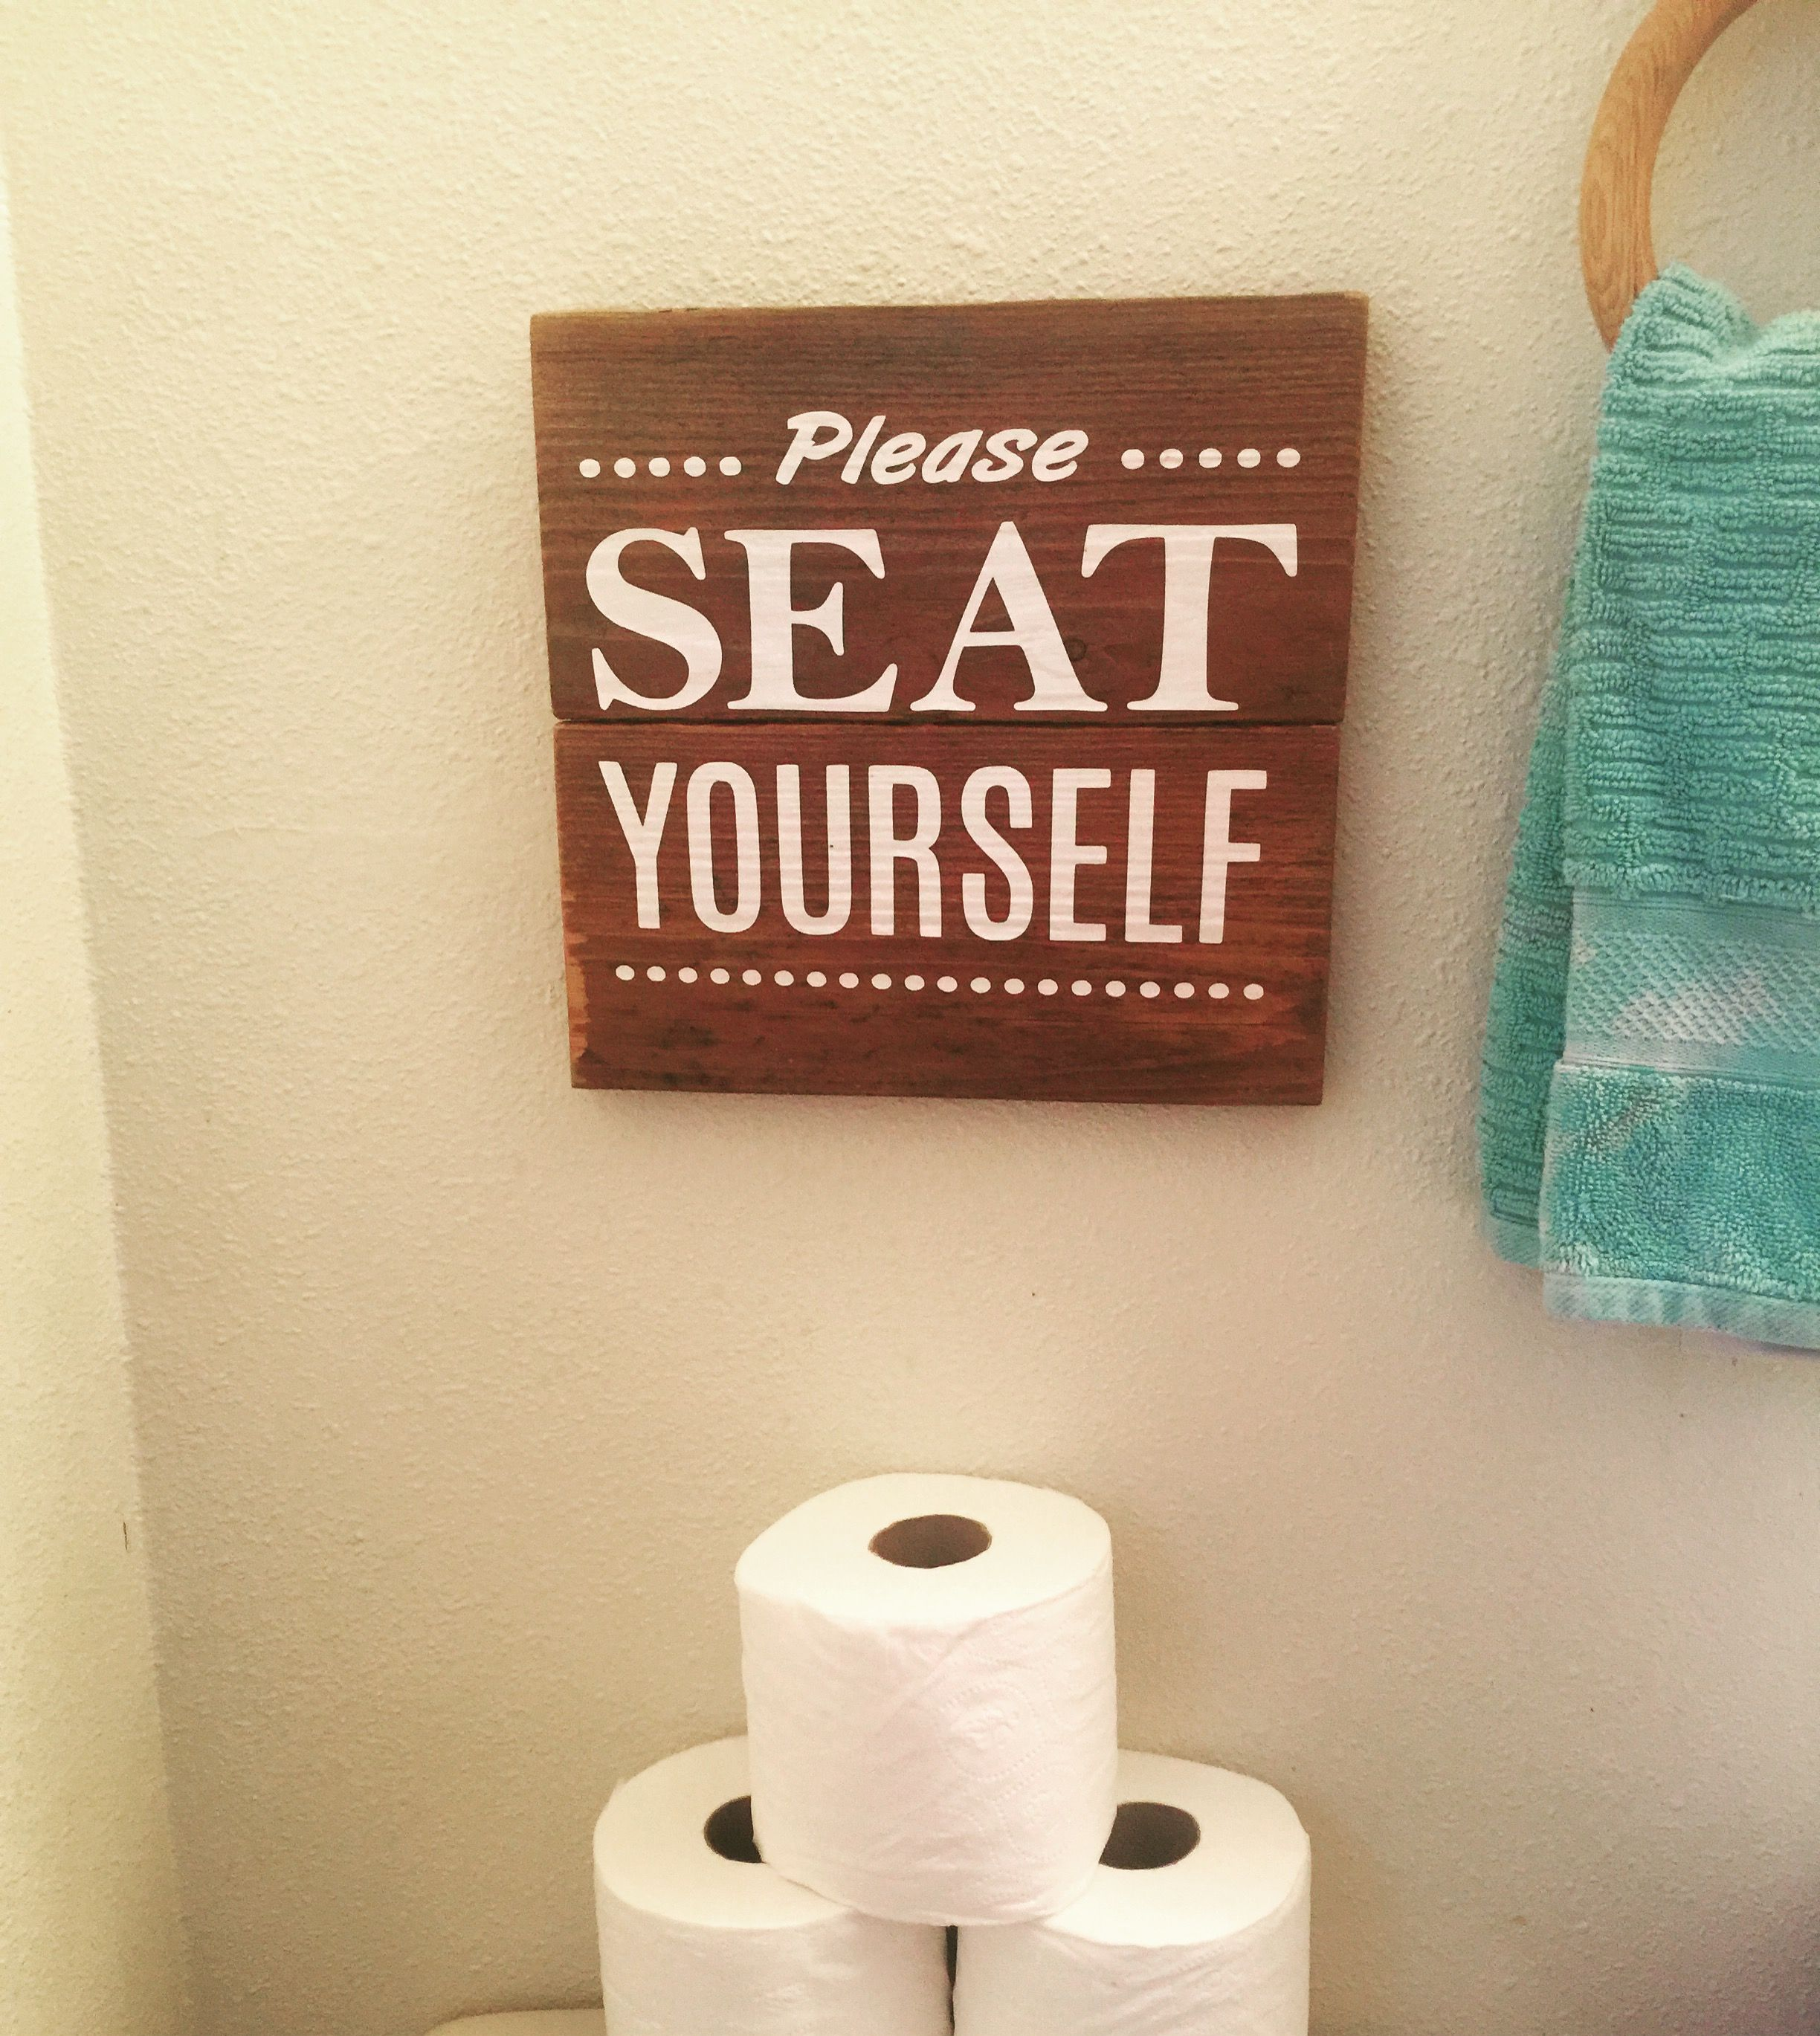 Funny bathroom sign made by farmhouse Clutter- www.facebook .com/farmhouseclutter